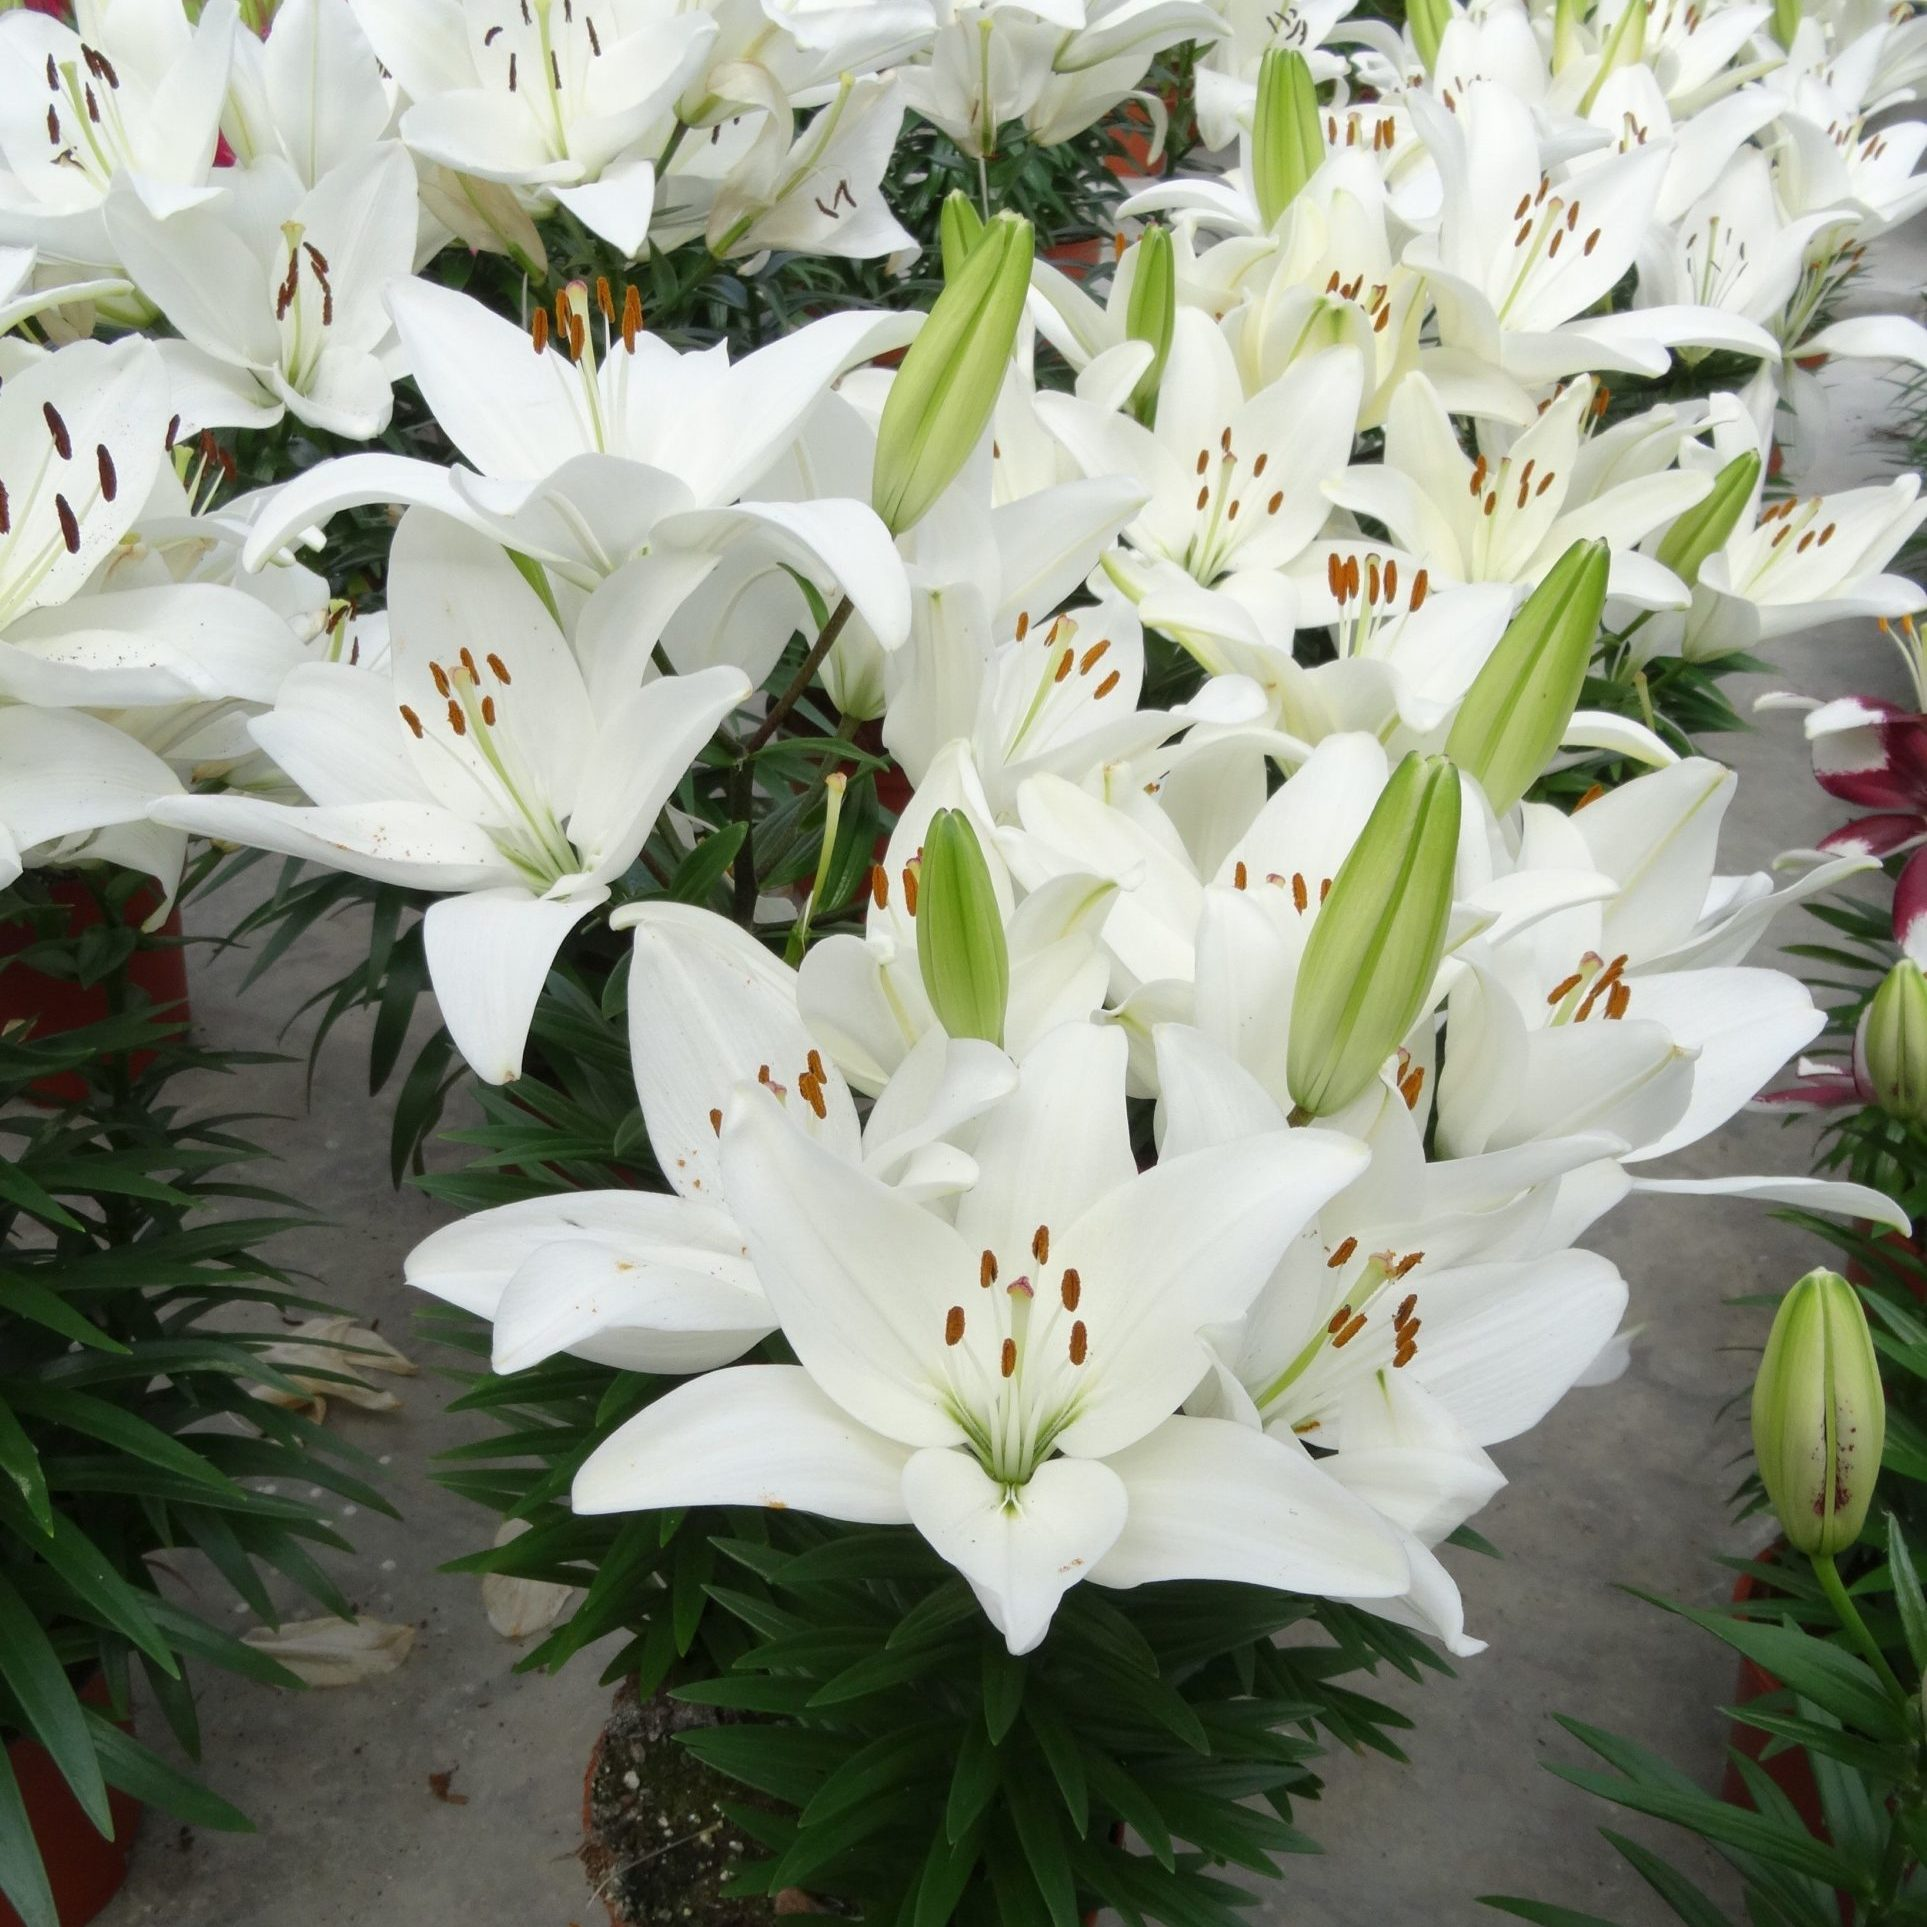 lily-Lilium-Lily-Looks-Tiny-Crystal